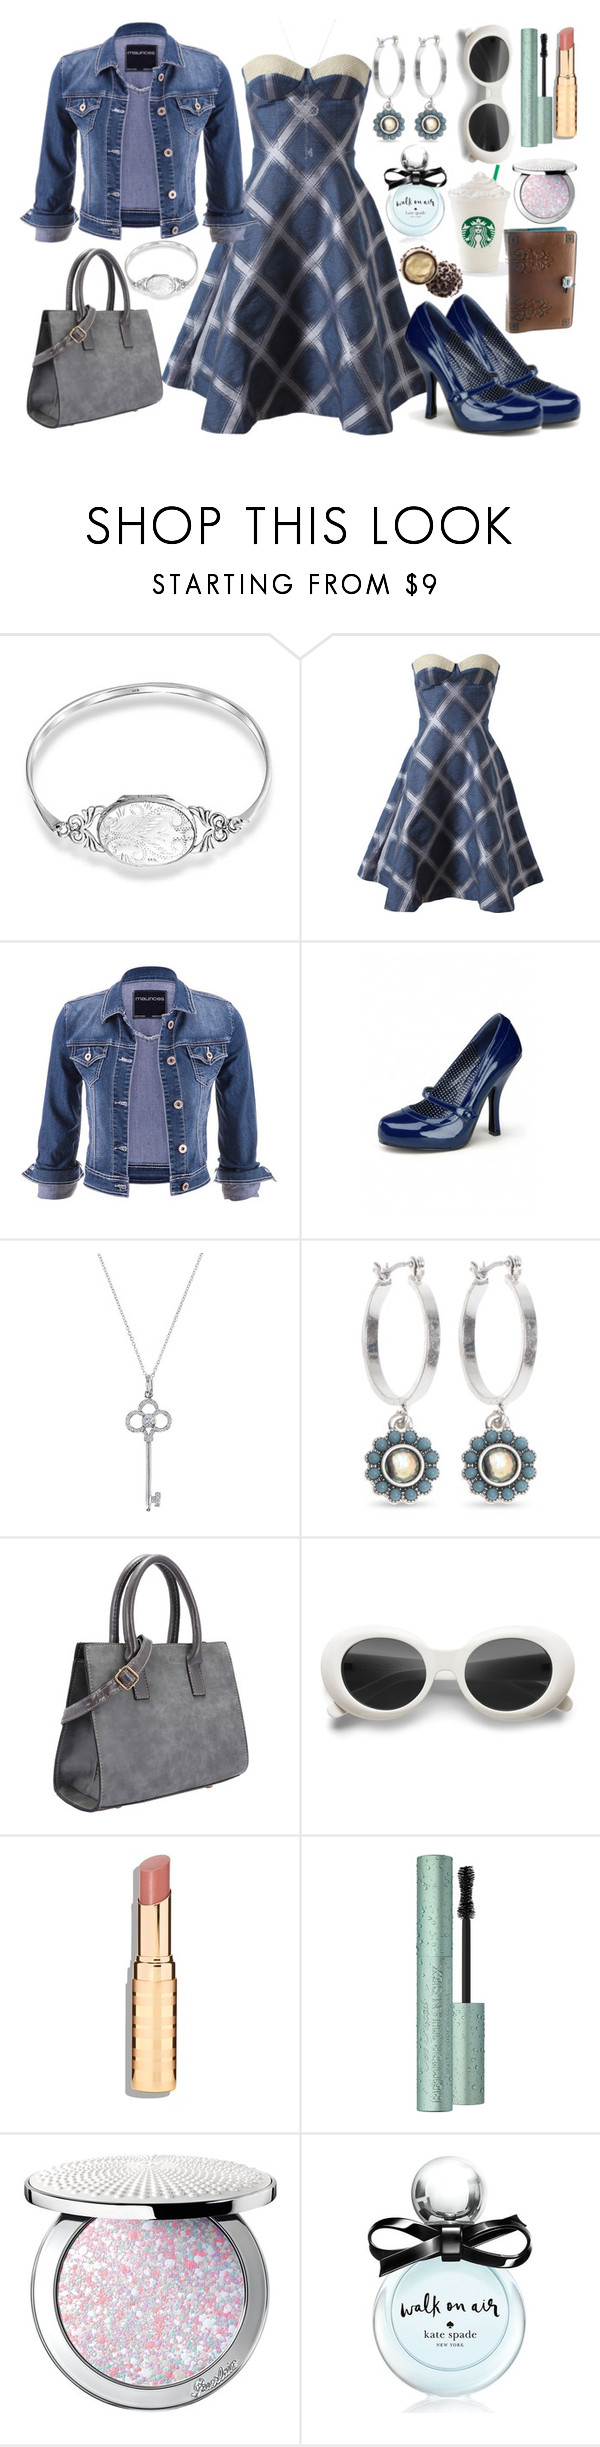 """""""Phoenix #4"""" by travelcutie ❤ liked on Polyvore featuring Bling Jewelry, House of Holland, maurices, Pinup Couture, Tiffany & Co., Vintage America, Guerlain and Kate Spade"""